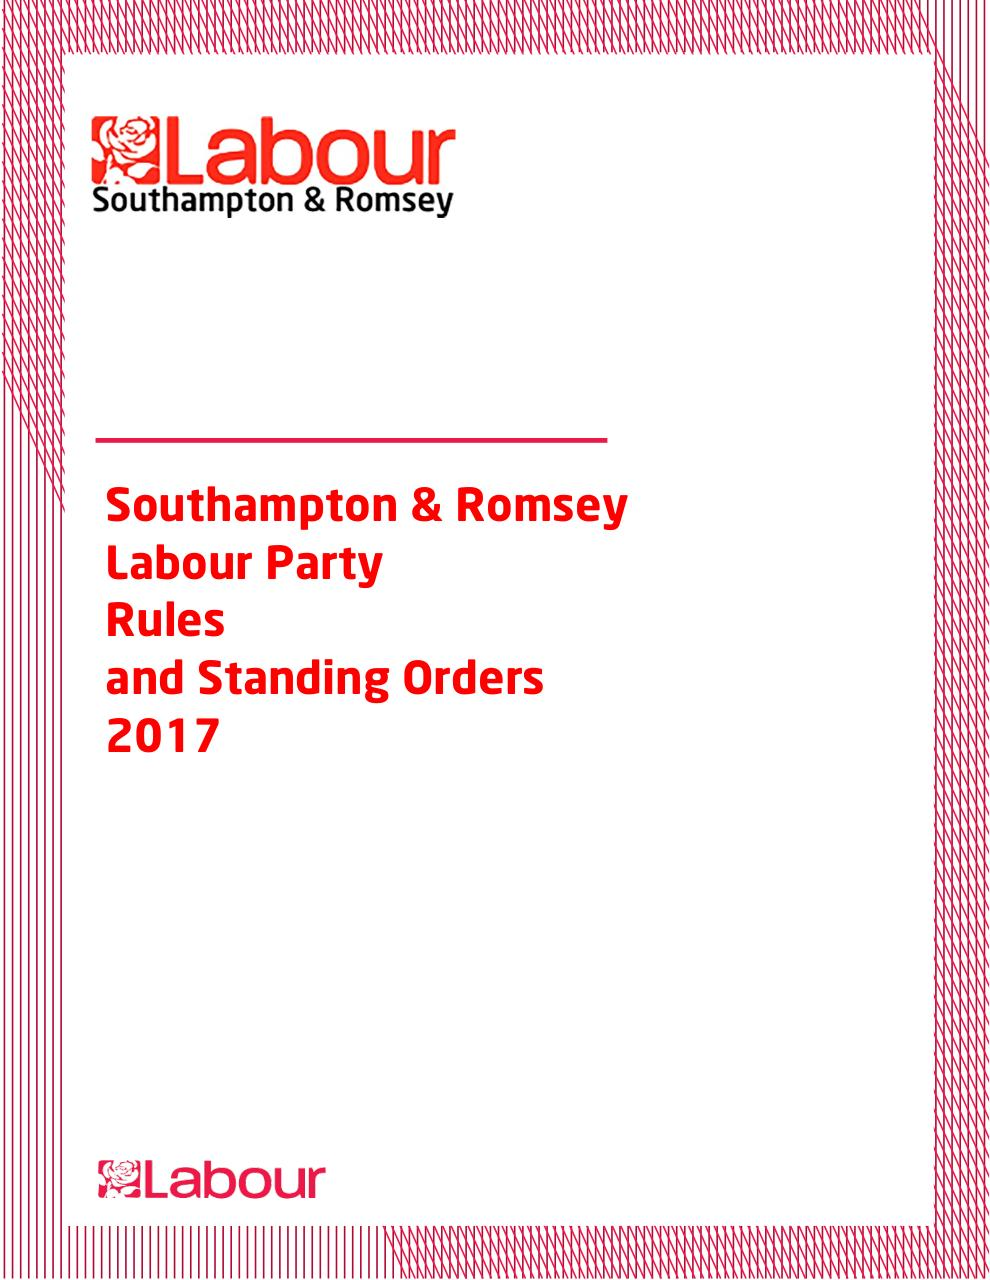 S&RLP Rules and SO 2017 Final.pdf - page 1/19